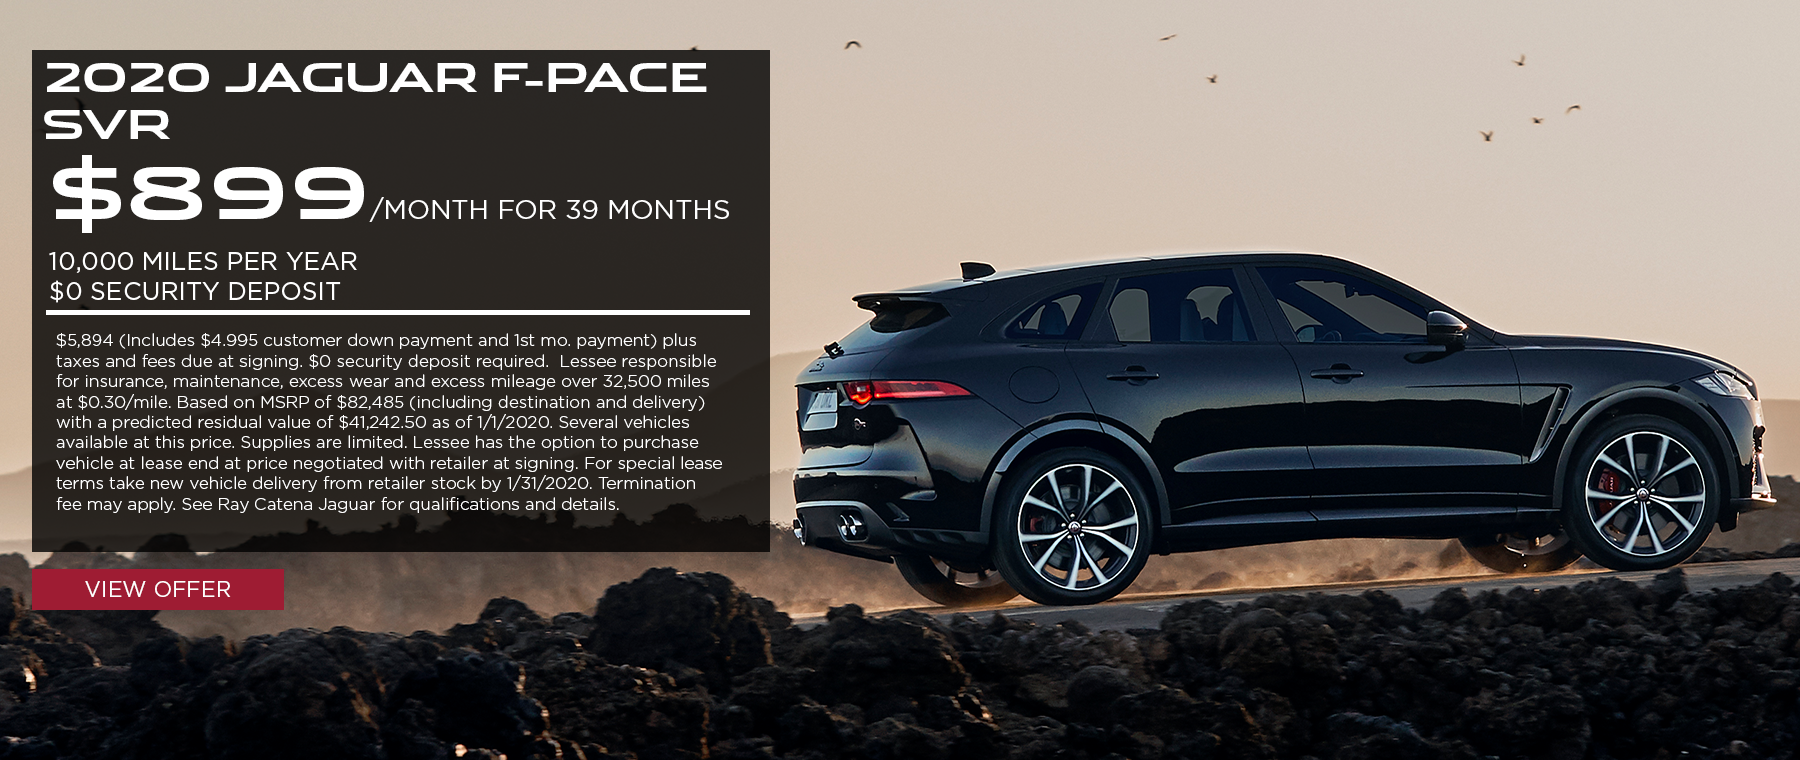 2020 Jaguar F-PACE SVR· $899/mo. · 39 mos. · 10,000 miles per year  $5,894 (Includes $4.995 customer down payment and 1st mo. payment) plus taxes and fees due at signing. $0 security deposit required.  Lessee responsible for insurance, maintenance, excess wear and excess mileage over 32,500 miles at $0.30/mile. Based on MSRP of $82,485 (including destination and delivery) with a predicted residual value of $41,242.50 as of 1/1/2020. Several vehicles available at this price. Supplies are limited. Lessee has the option to purchase vehicle at lease end at price negotiated with retailer at signing. For special lease terms take new vehicle delivery from retailer stock by 1/31/2020. Termination fee may apply. See Ray Catena Jaguar for qualifications and details. Click to view offer. Black F-PACE SVR on rocky road